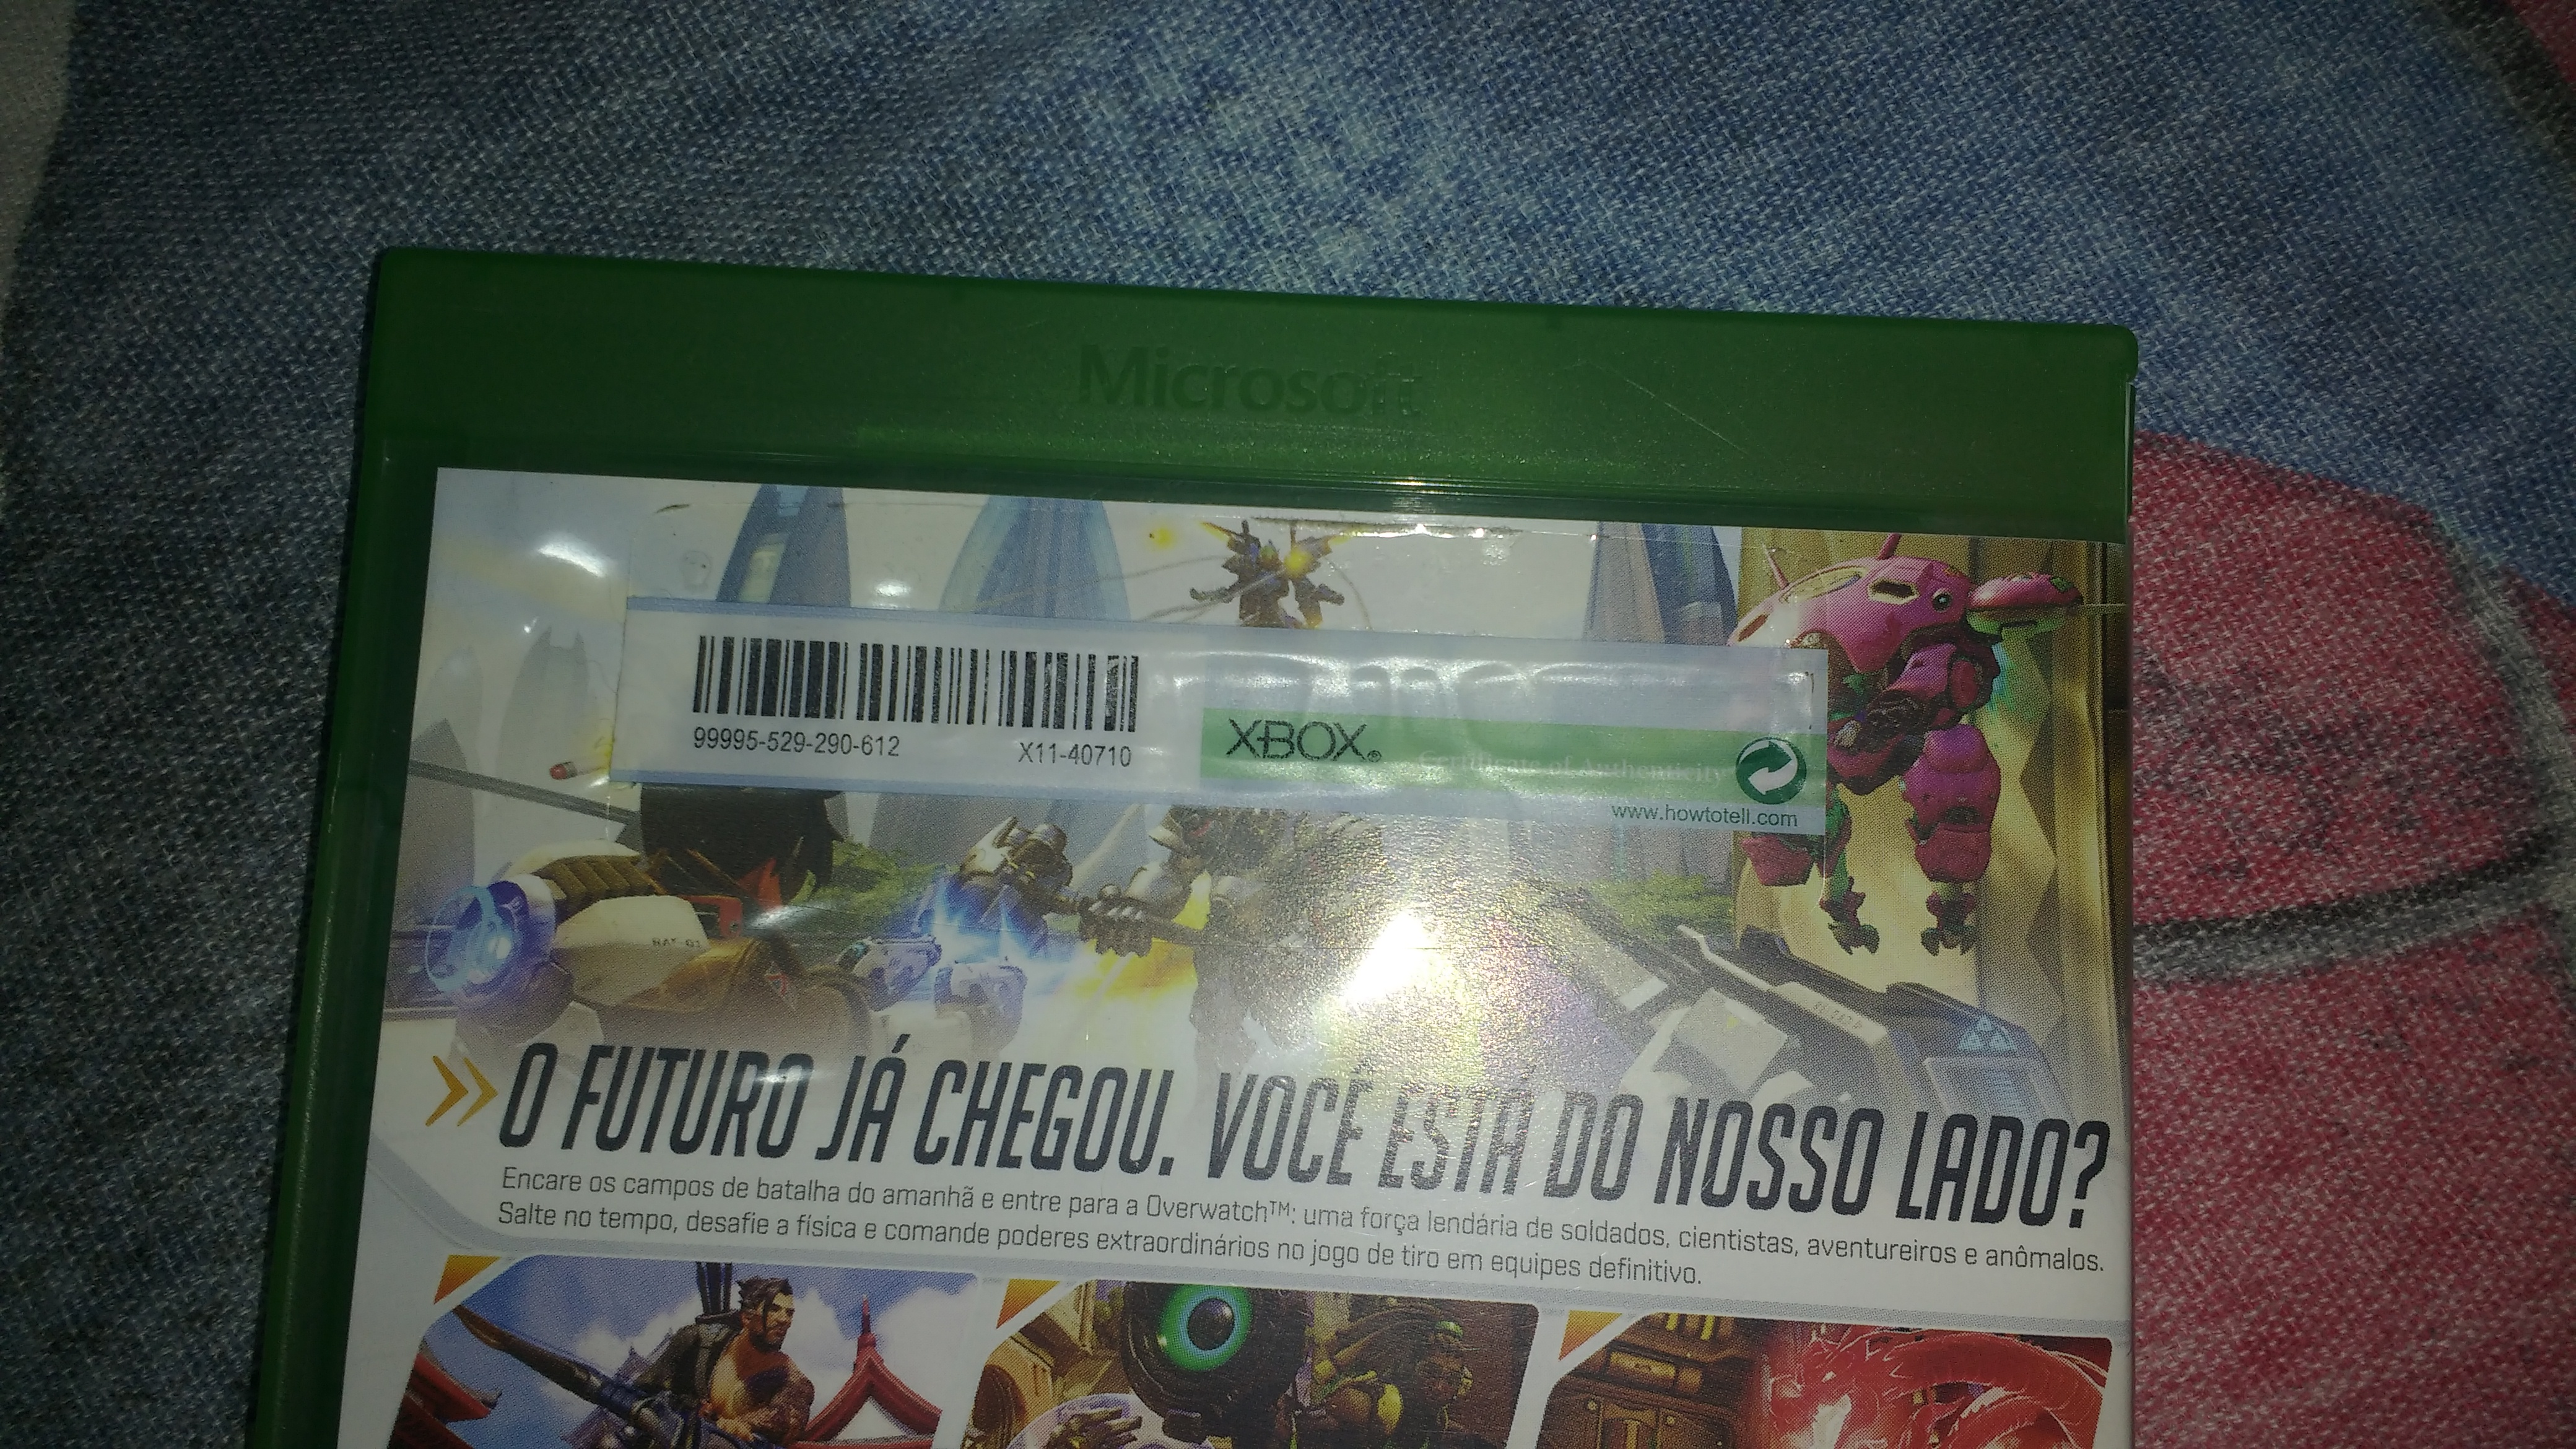 Overwatch: Origins Edition Physical Media Not Recognized by Console [IMG]